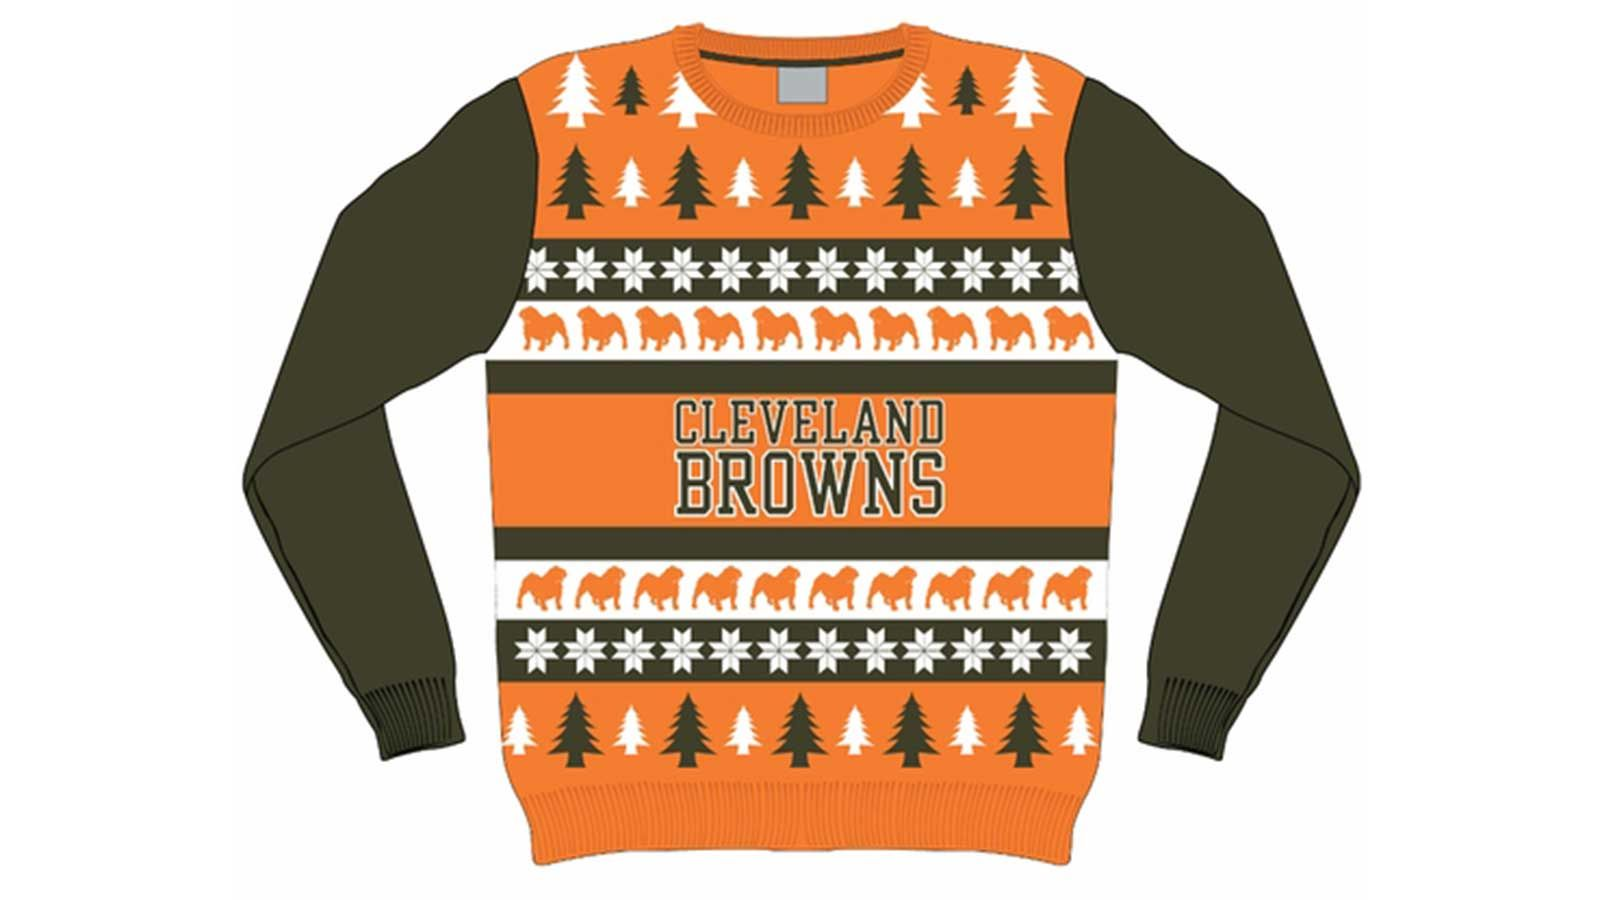 Cleveland Browns Christmas Sweater.It S Not Too Early To Get Your Cleveland Browns Ugly